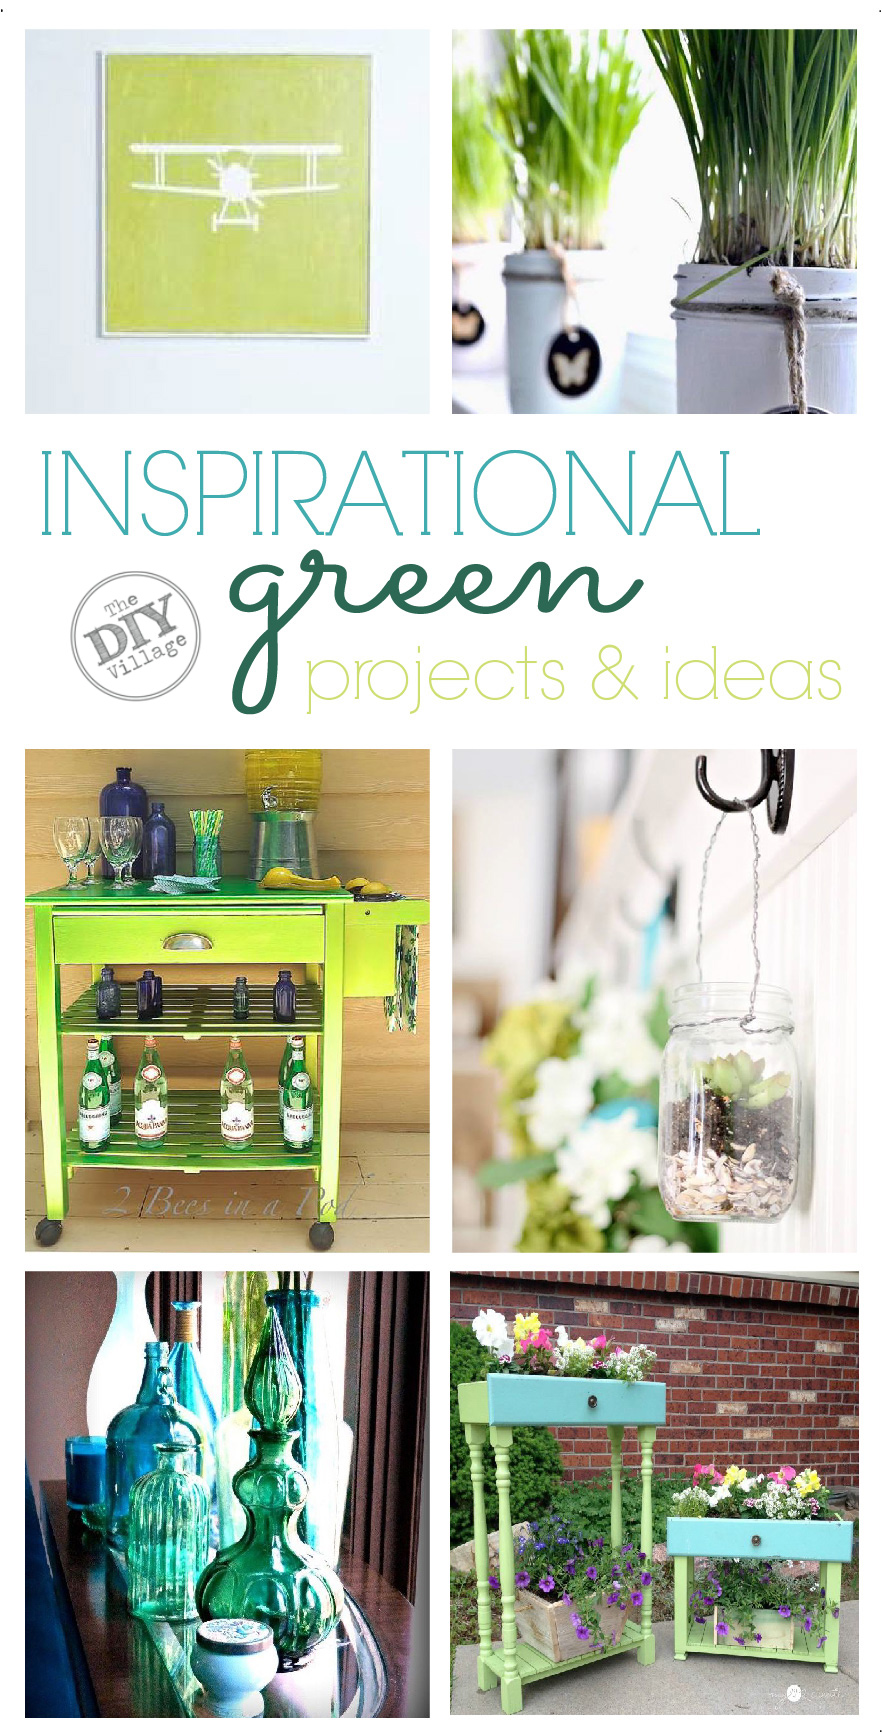 Eleven Green inspirational projects and ideas.